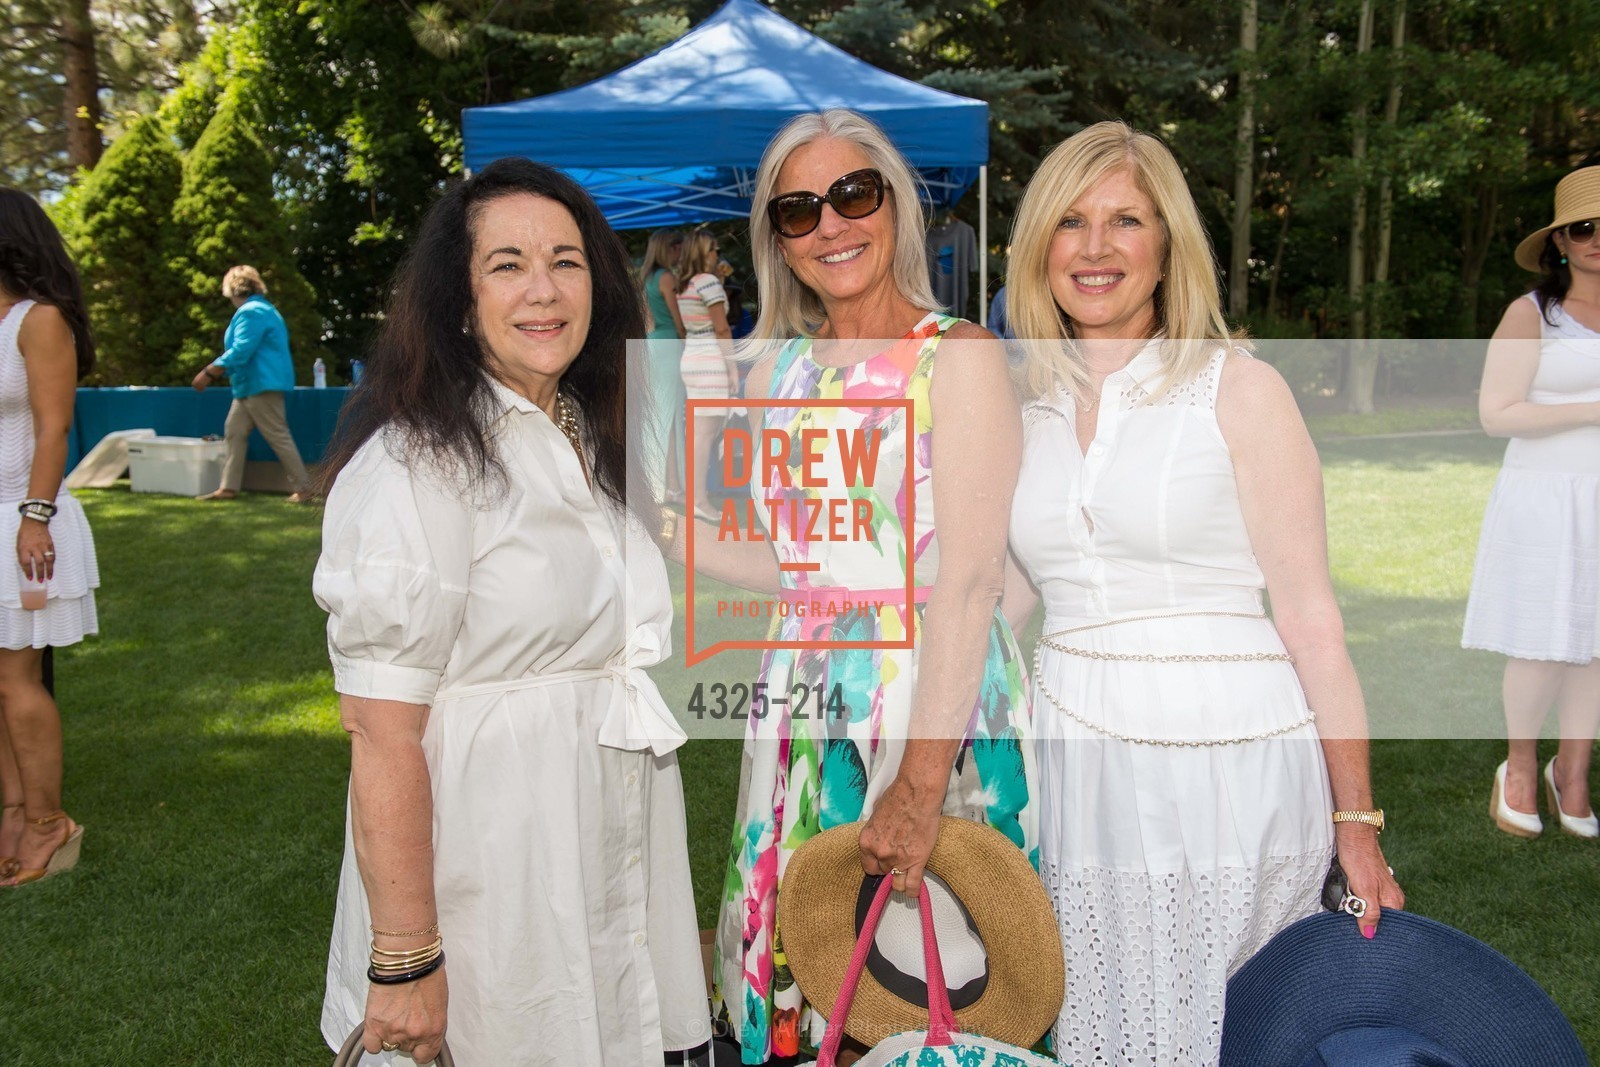 NIna Klein, Suzanne Evans, Melanie Montanas, Saks Fifth Avenue and The League to Save Lake Tahoe Present Fashion on the Lake, Private Residence, August 1st, 2015,Drew Altizer, Drew Altizer Photography, full-service agency, private events, San Francisco photographer, photographer california